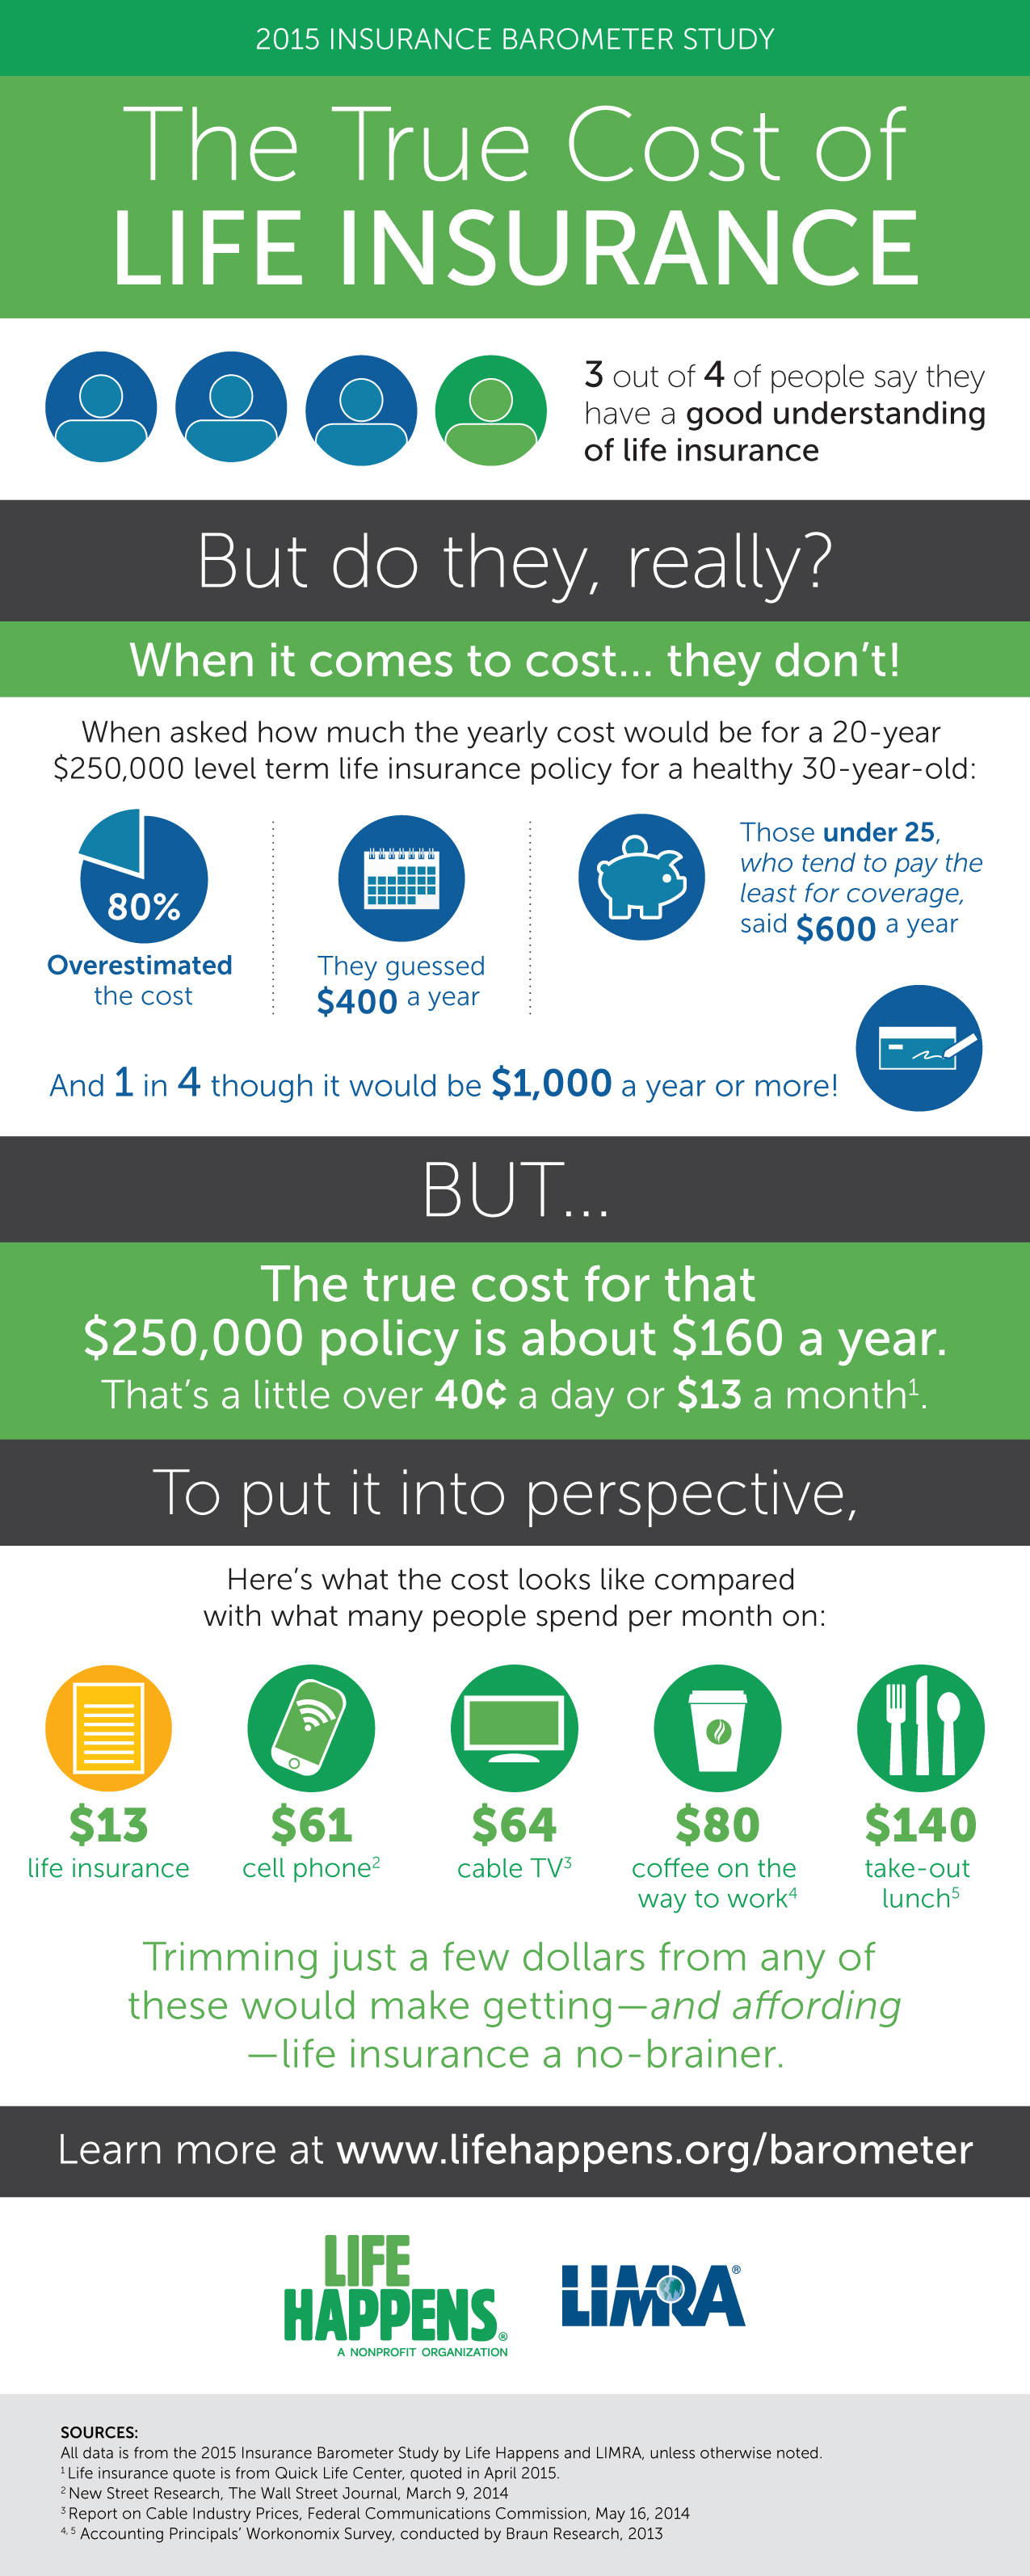 Do you have a good understanding of life insurance?